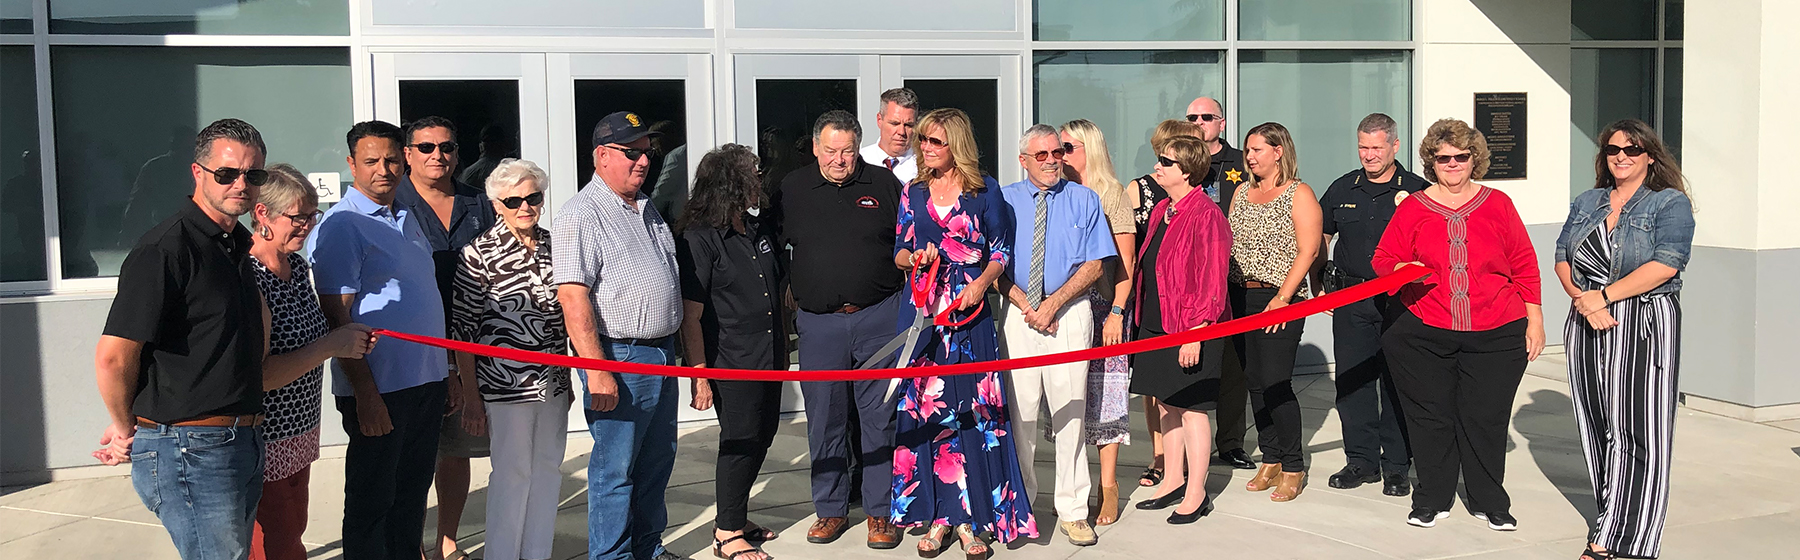 Wilson Middle School Multipurpose Building Ribbon Cutting Ceremony